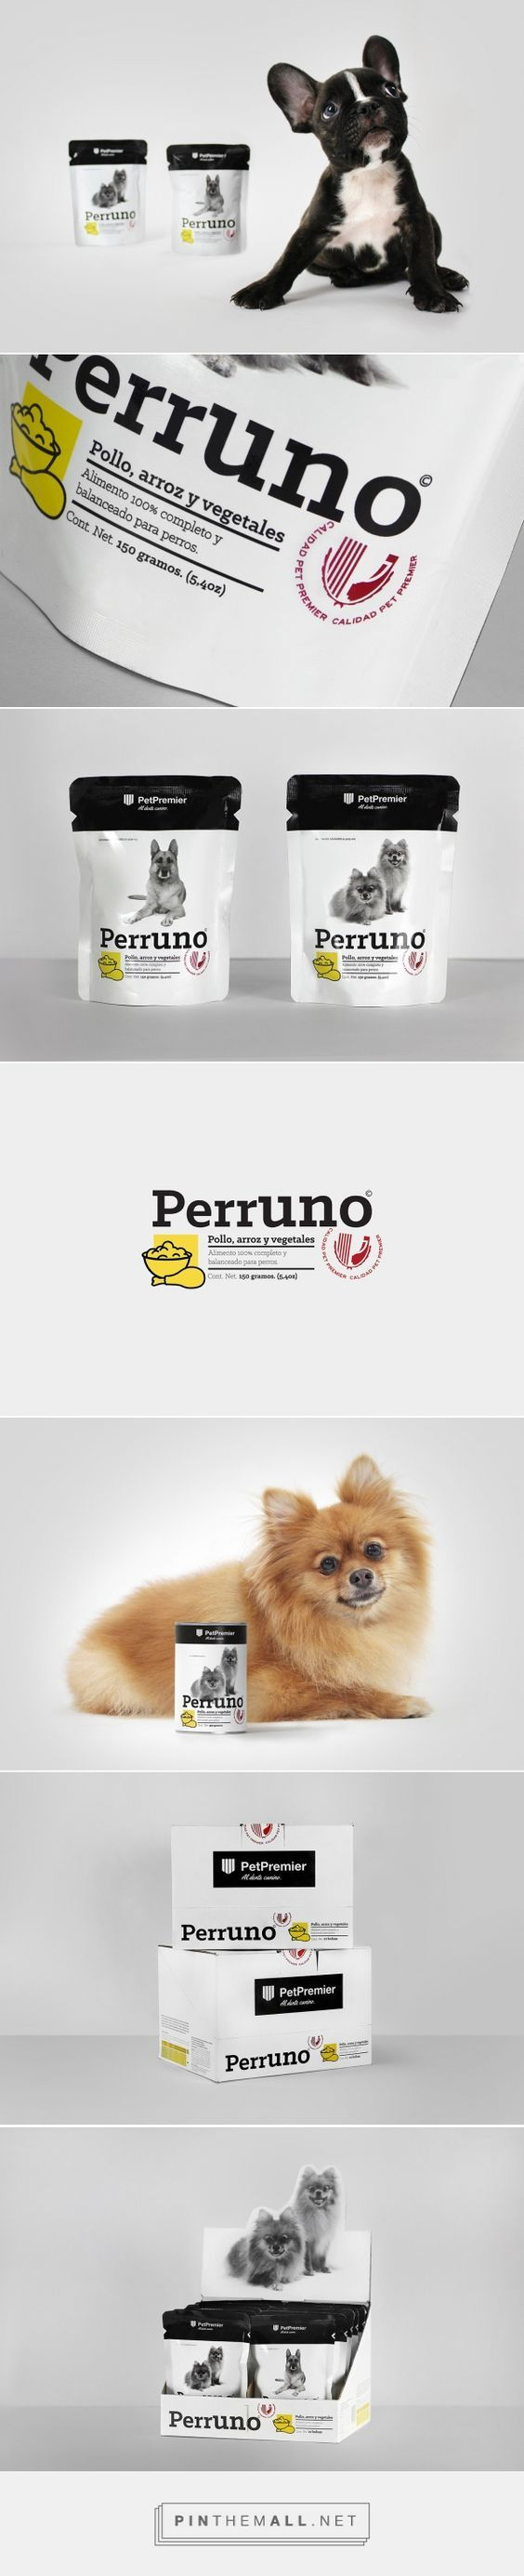 best dogs images on pinterest logo templates corporate